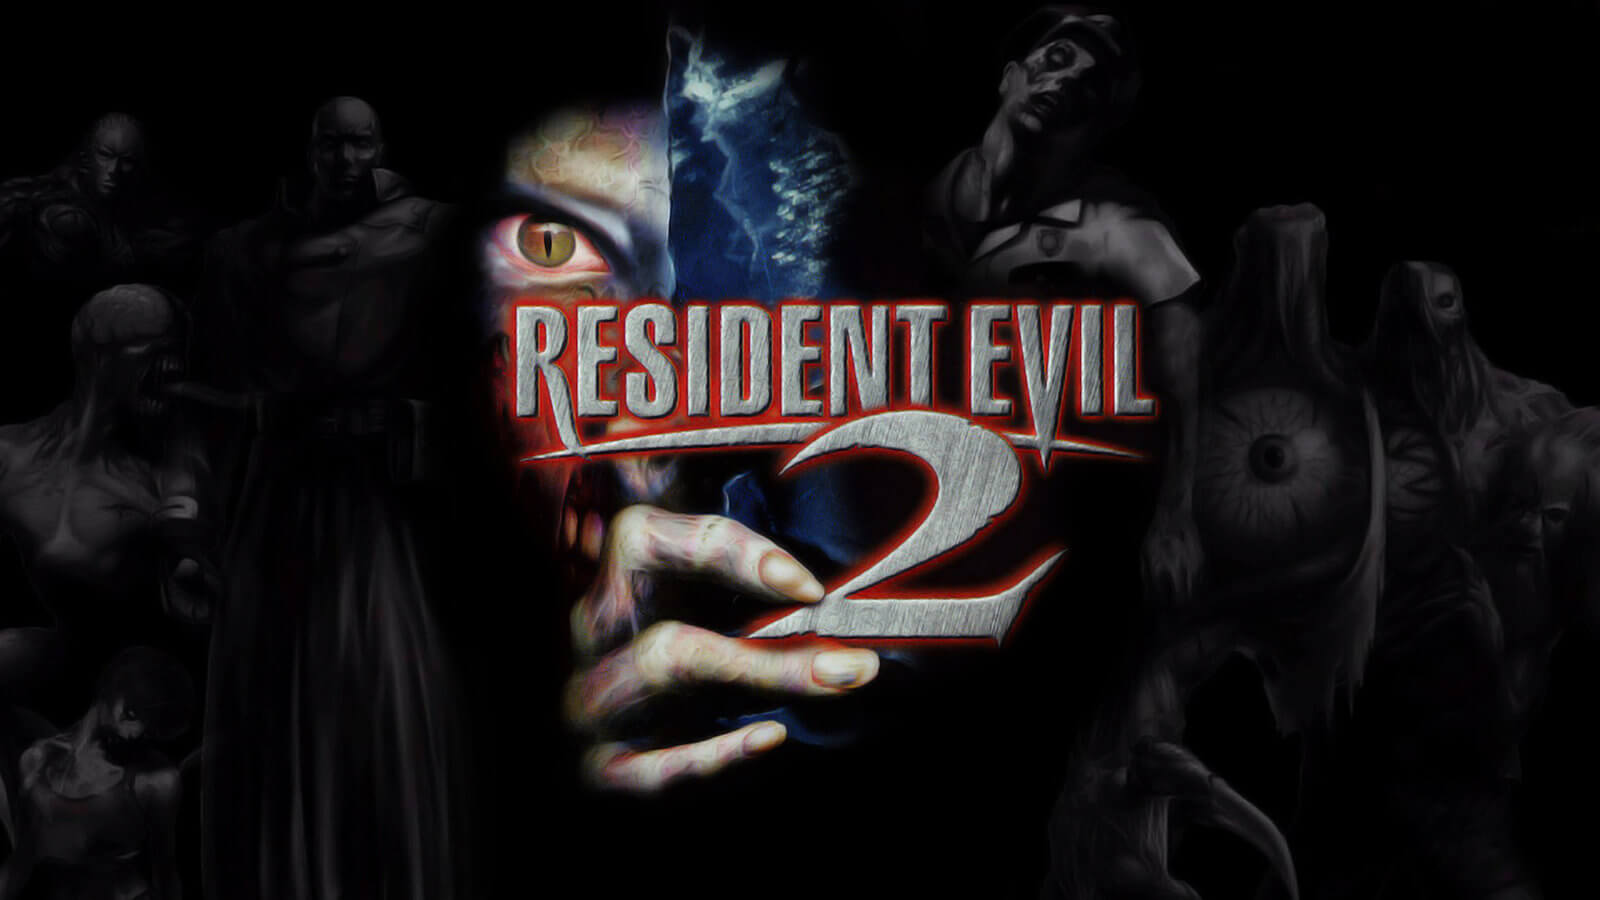 'Resident Evil 2' Remake Officially Announced